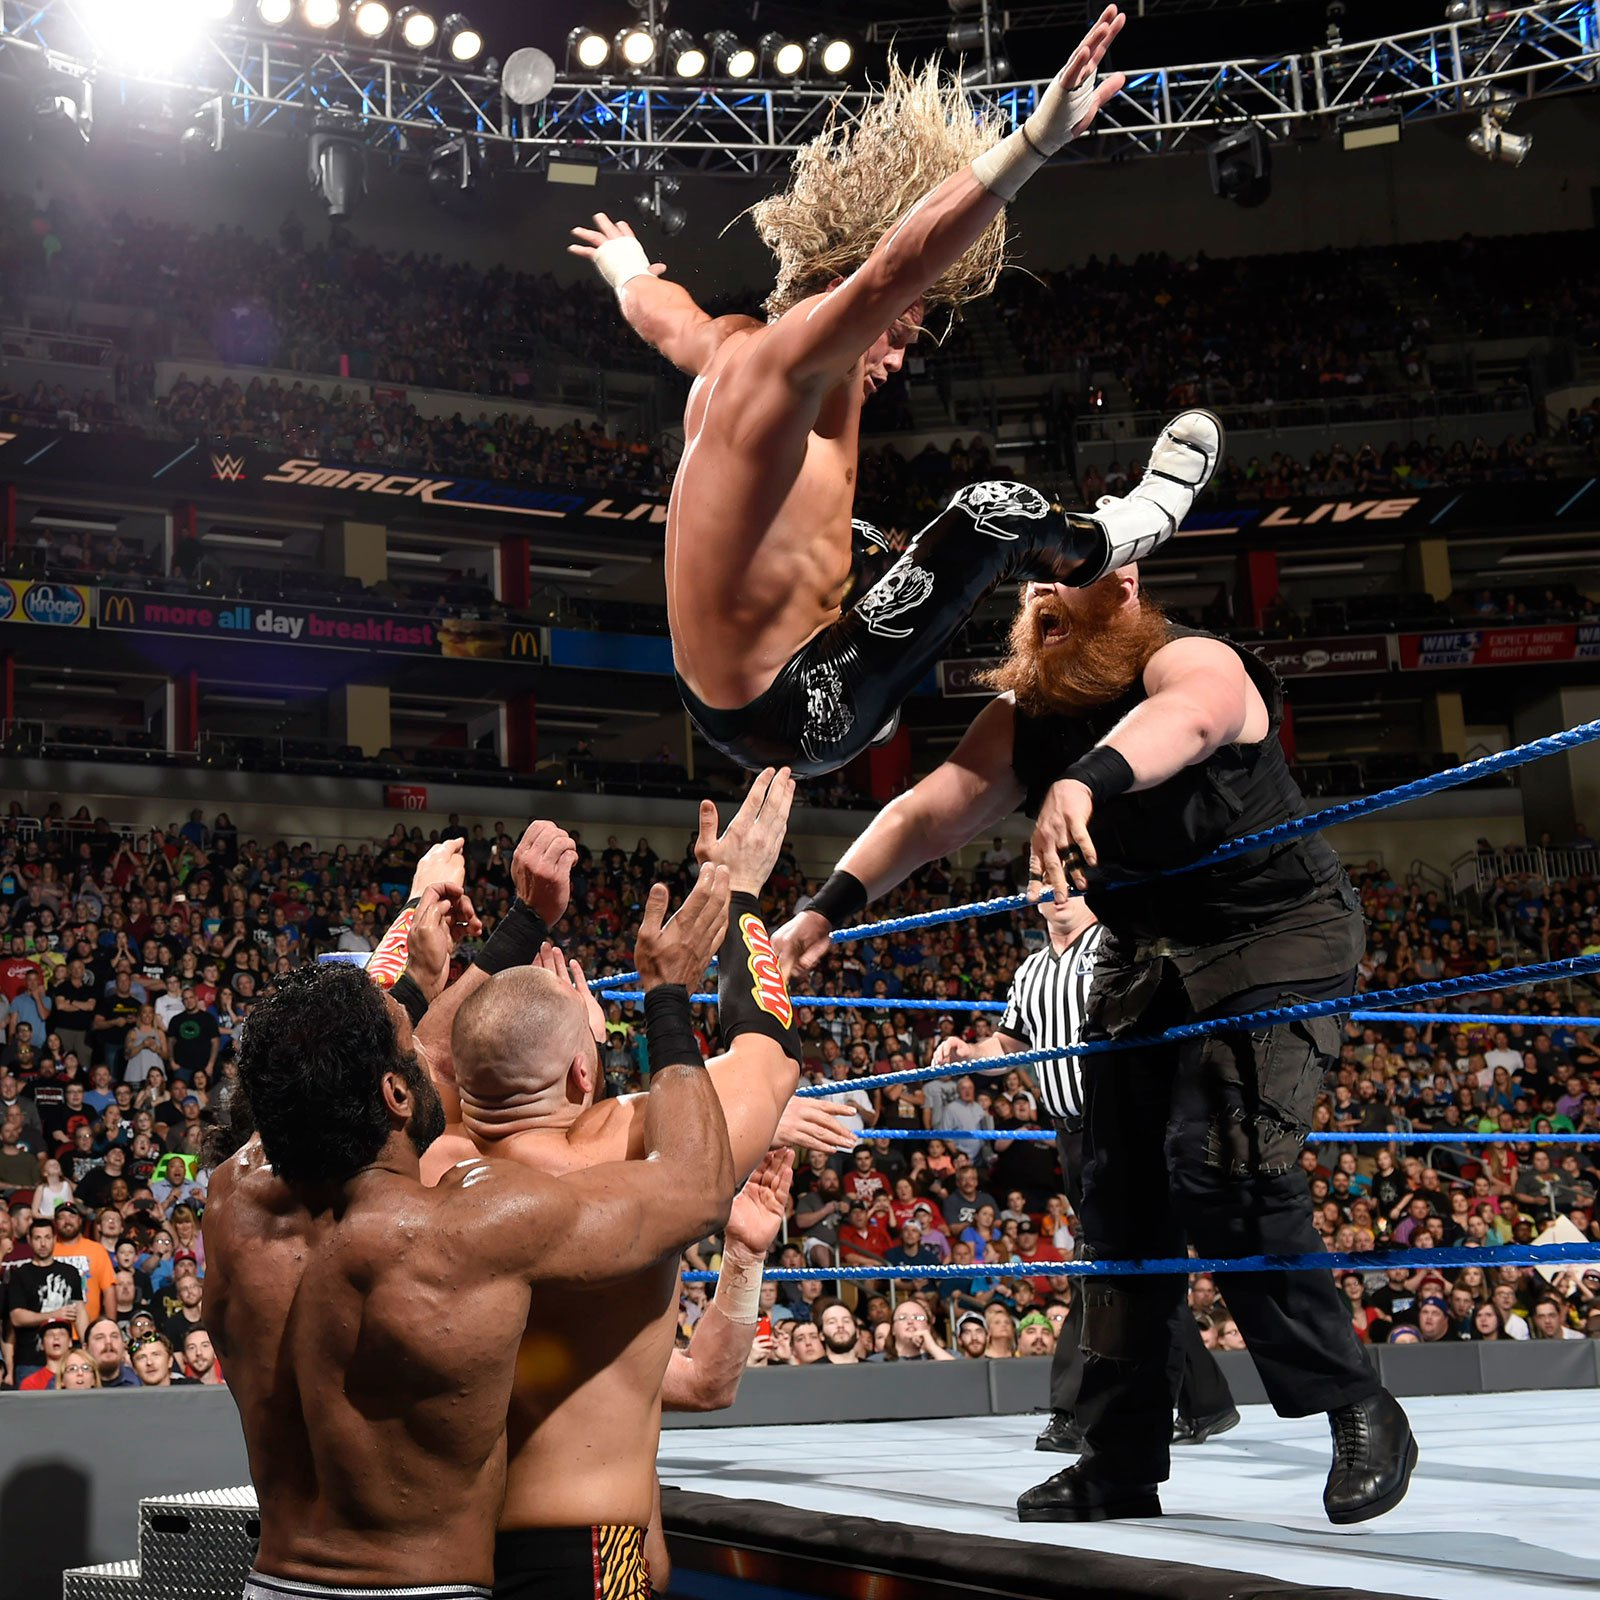 Rowan hurls Ziggler over the top rope.